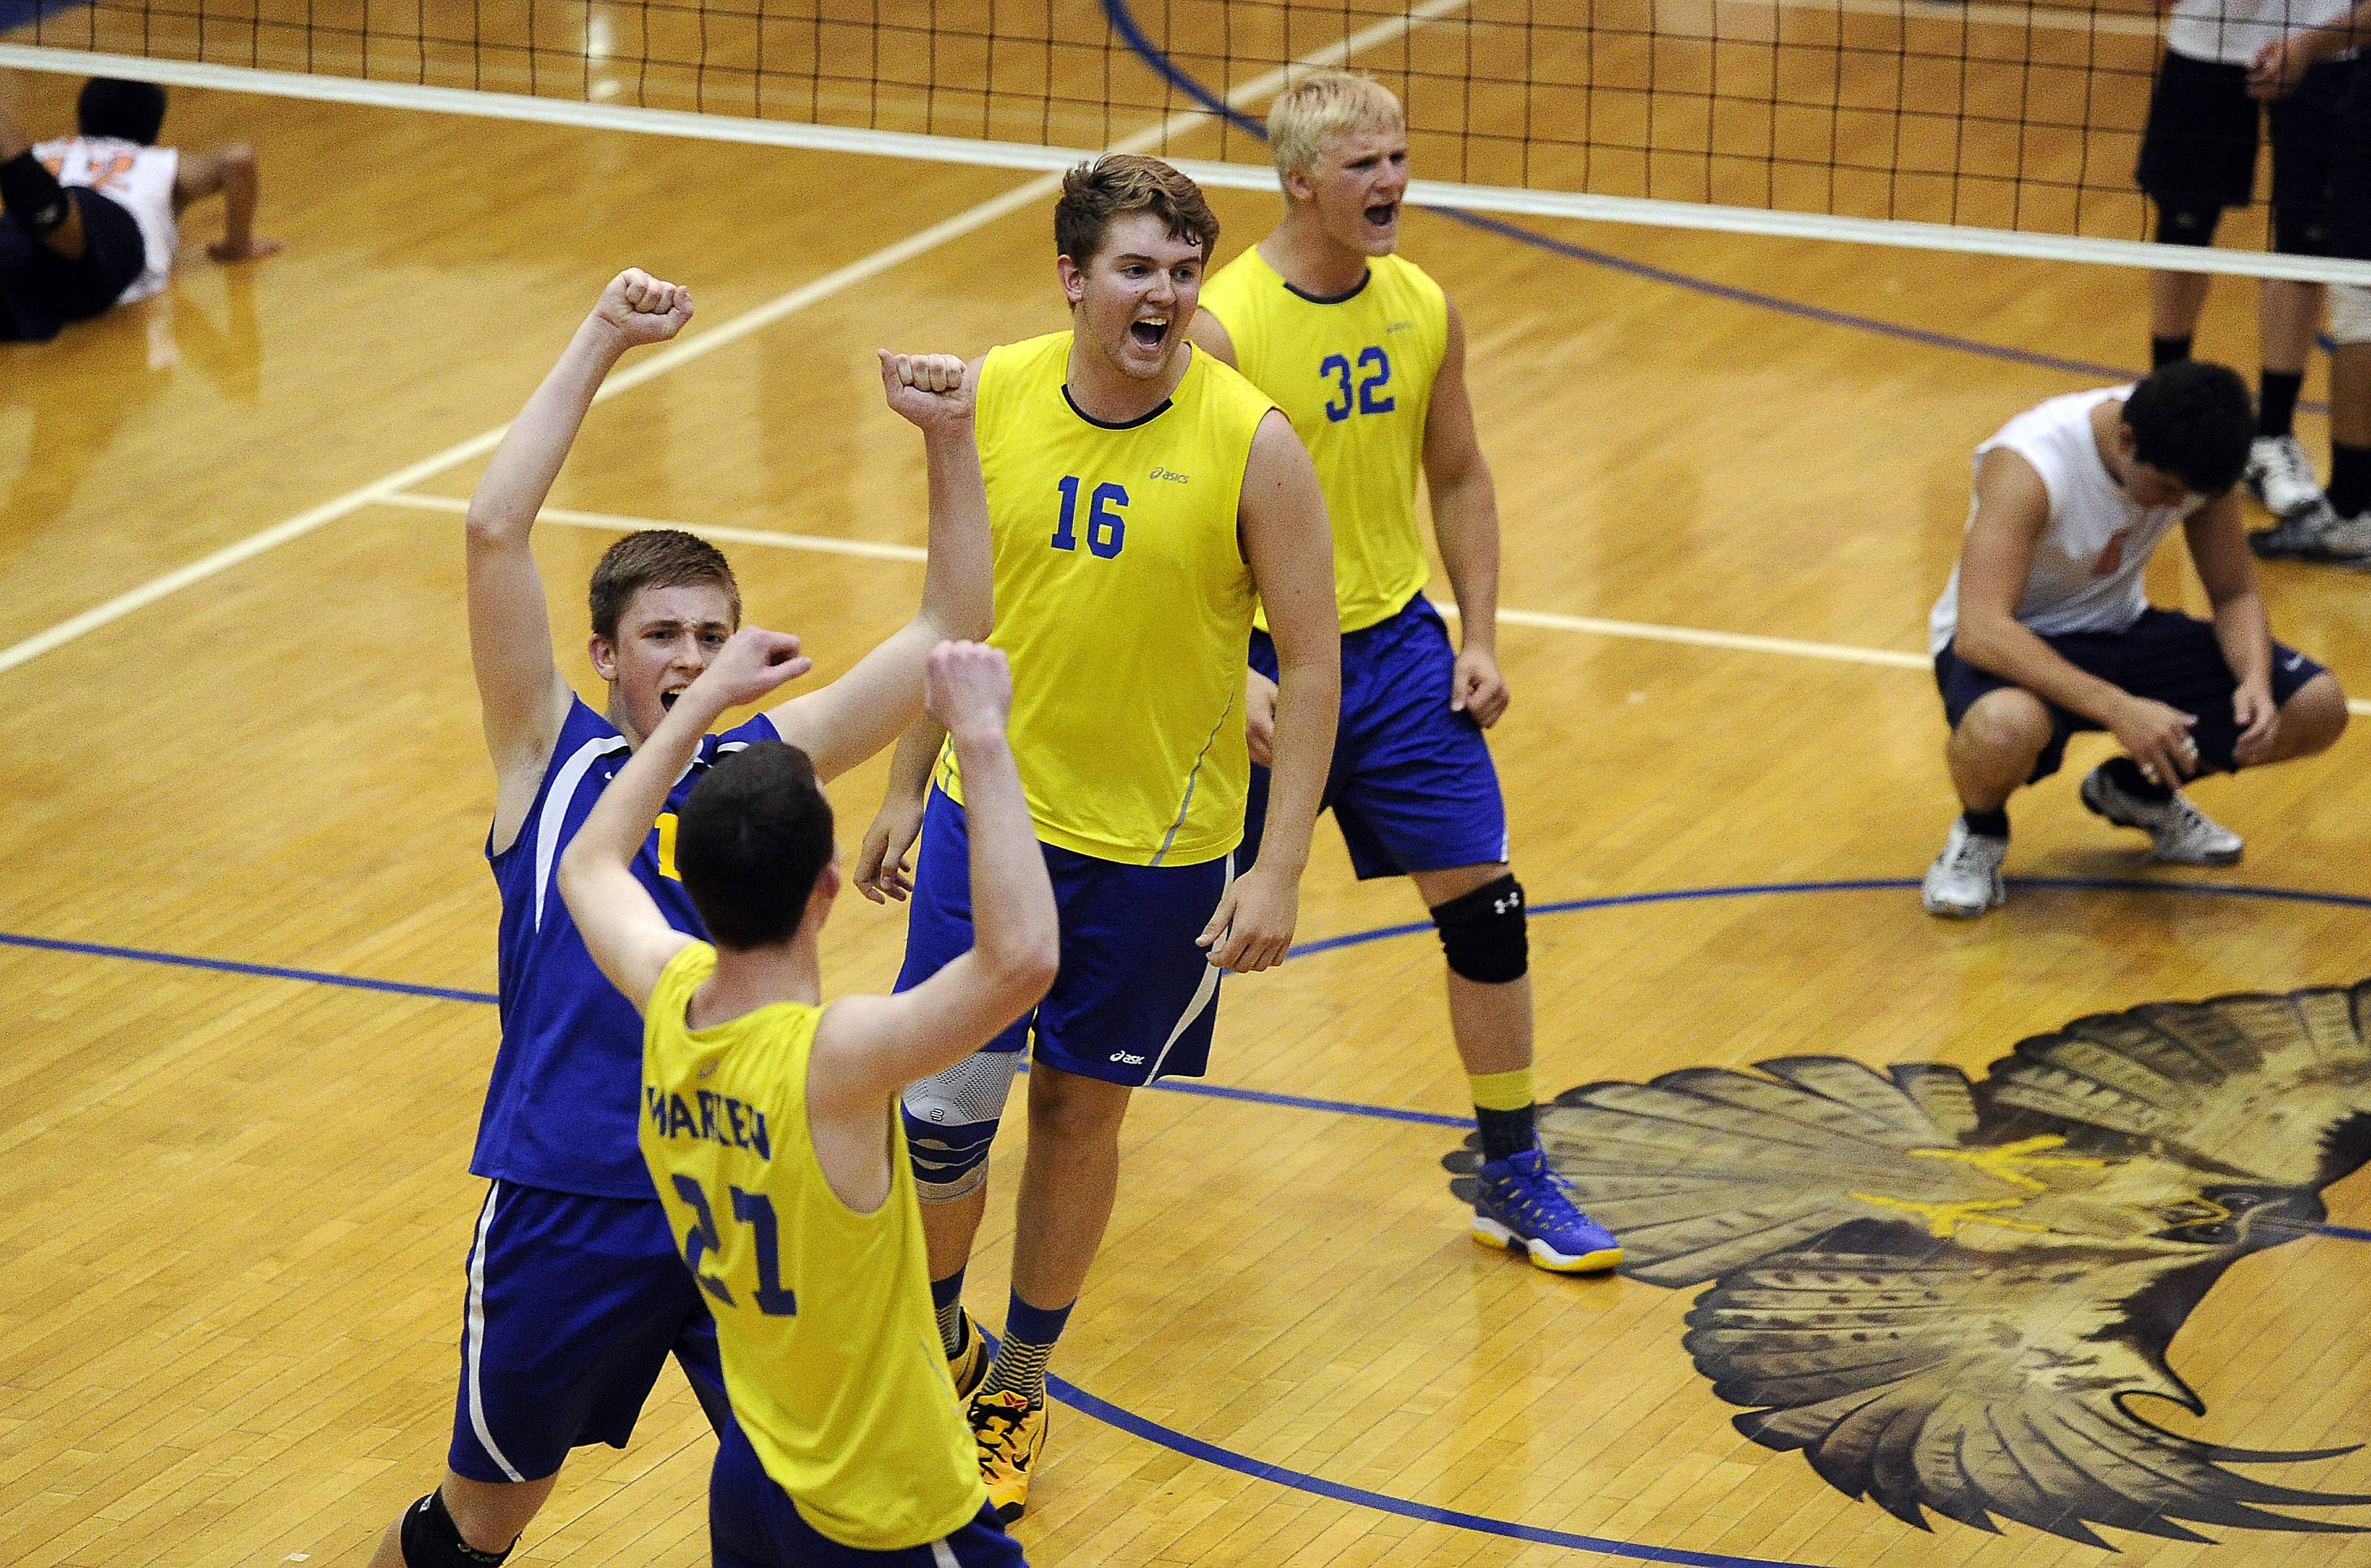 Warren's Mitch Maan de kok (16) celebrates his team's victory over Payton after set two Friday at Hoffman Estates.